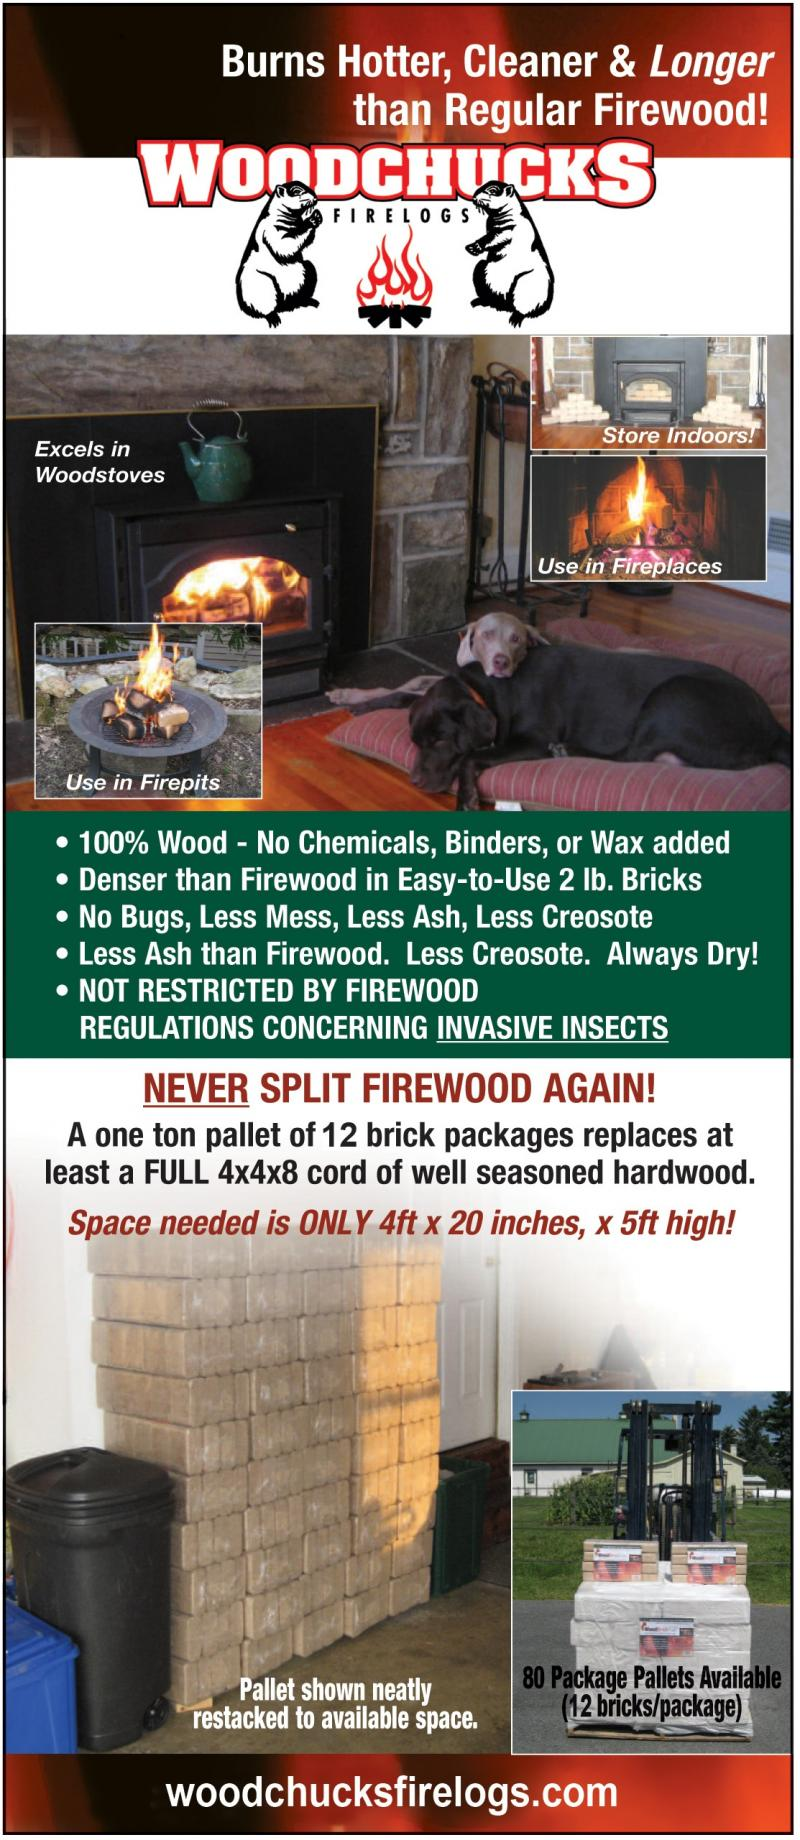 Woodchucks Firelogs Rack Card